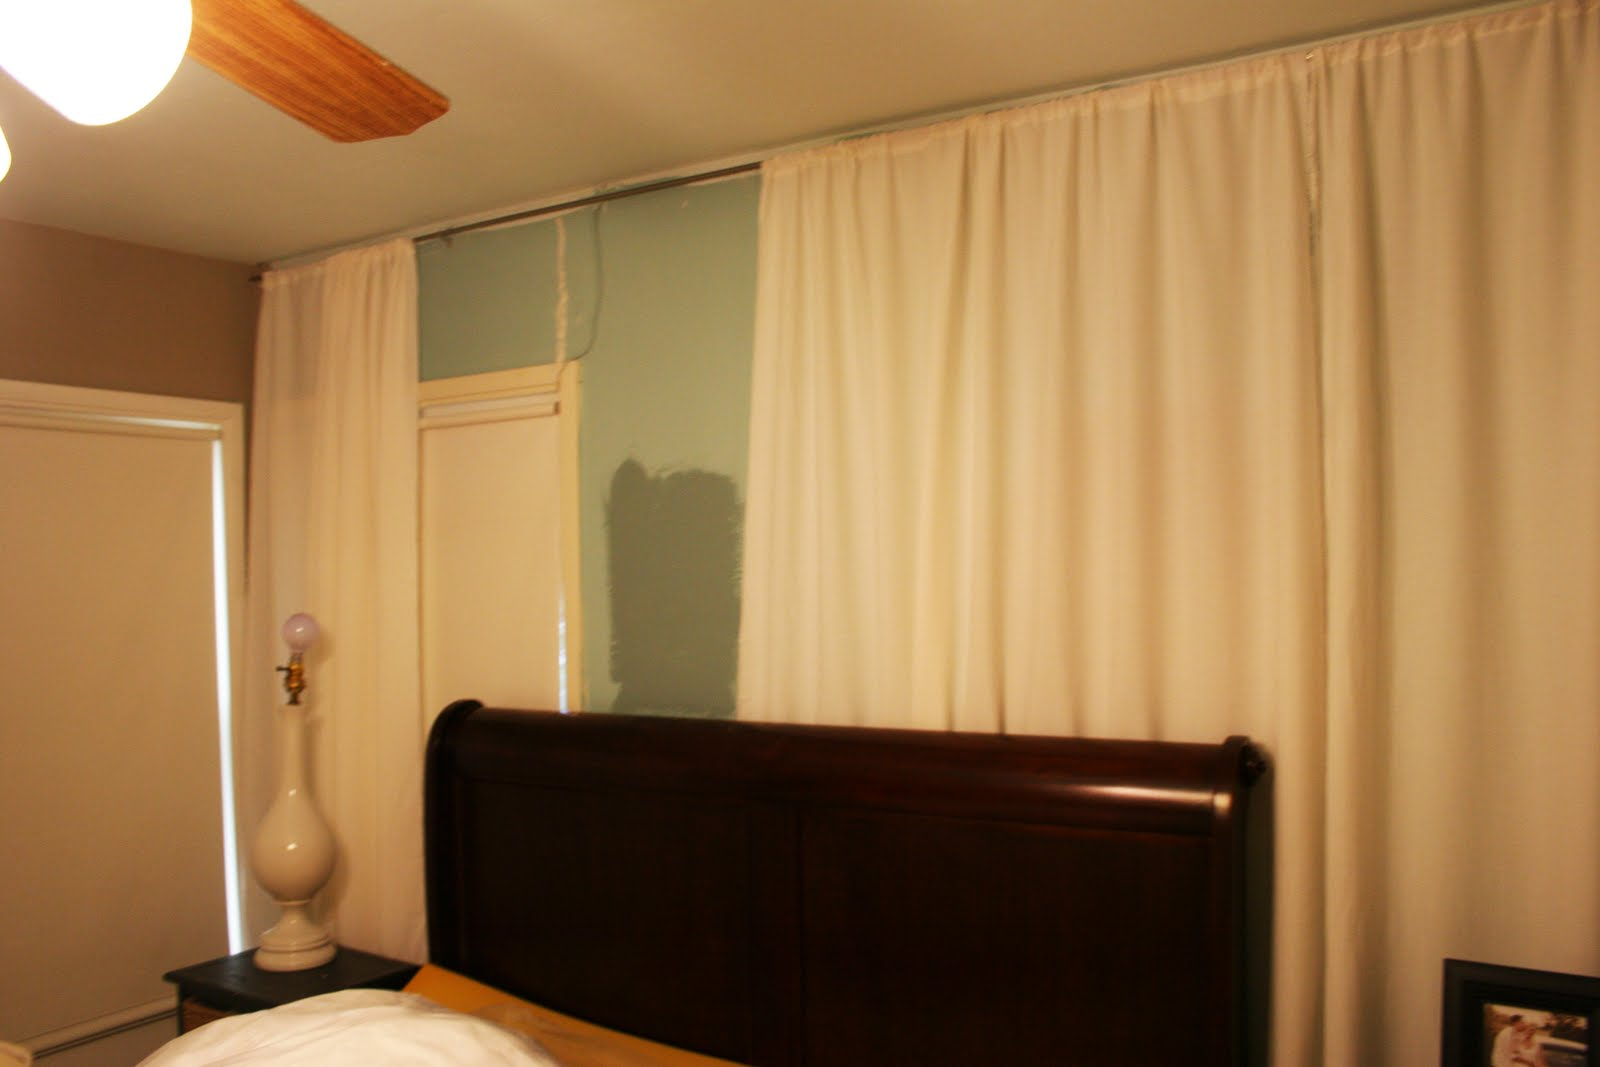 Curtains To Cover Wall Revolutionhr